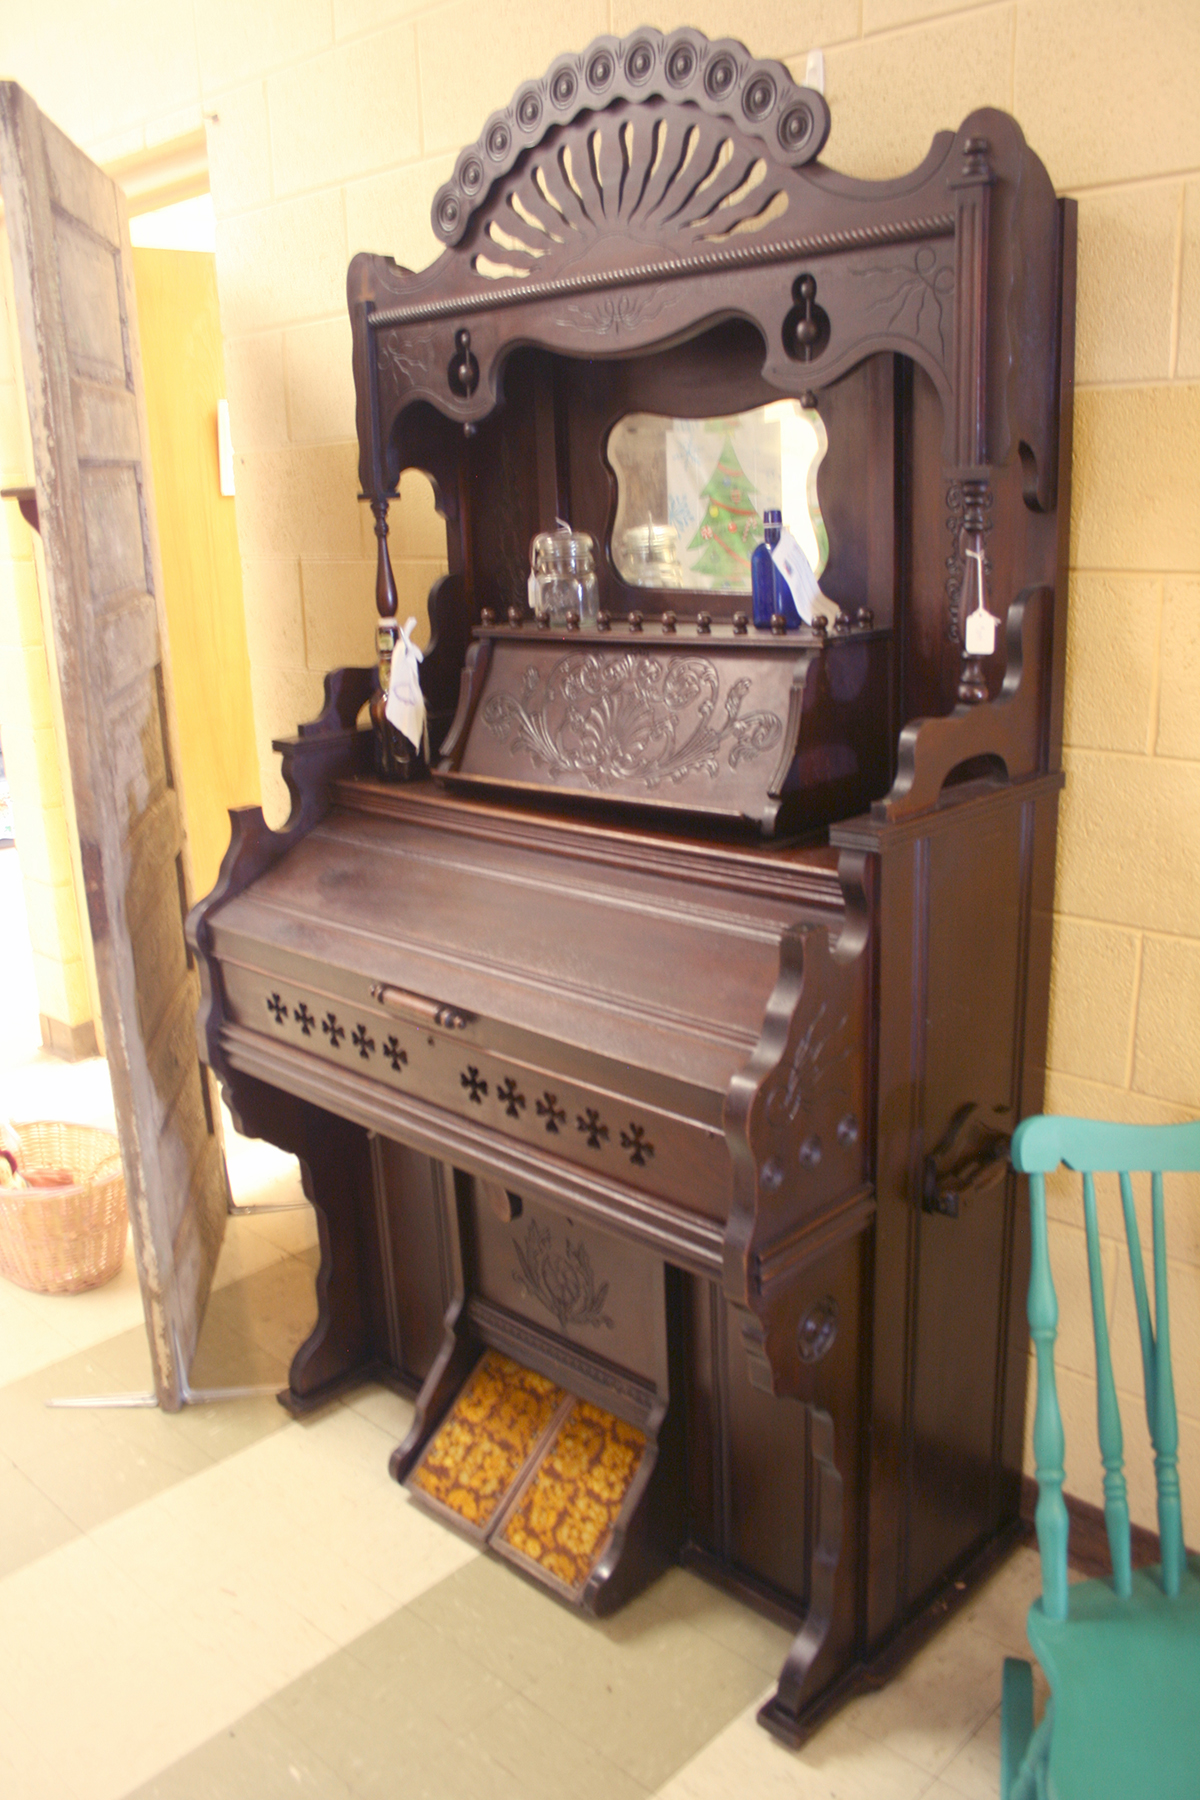 When word got out about the new fund-raising venture, people started donating items. Some of them were sold as they came in, such as this antique organ.